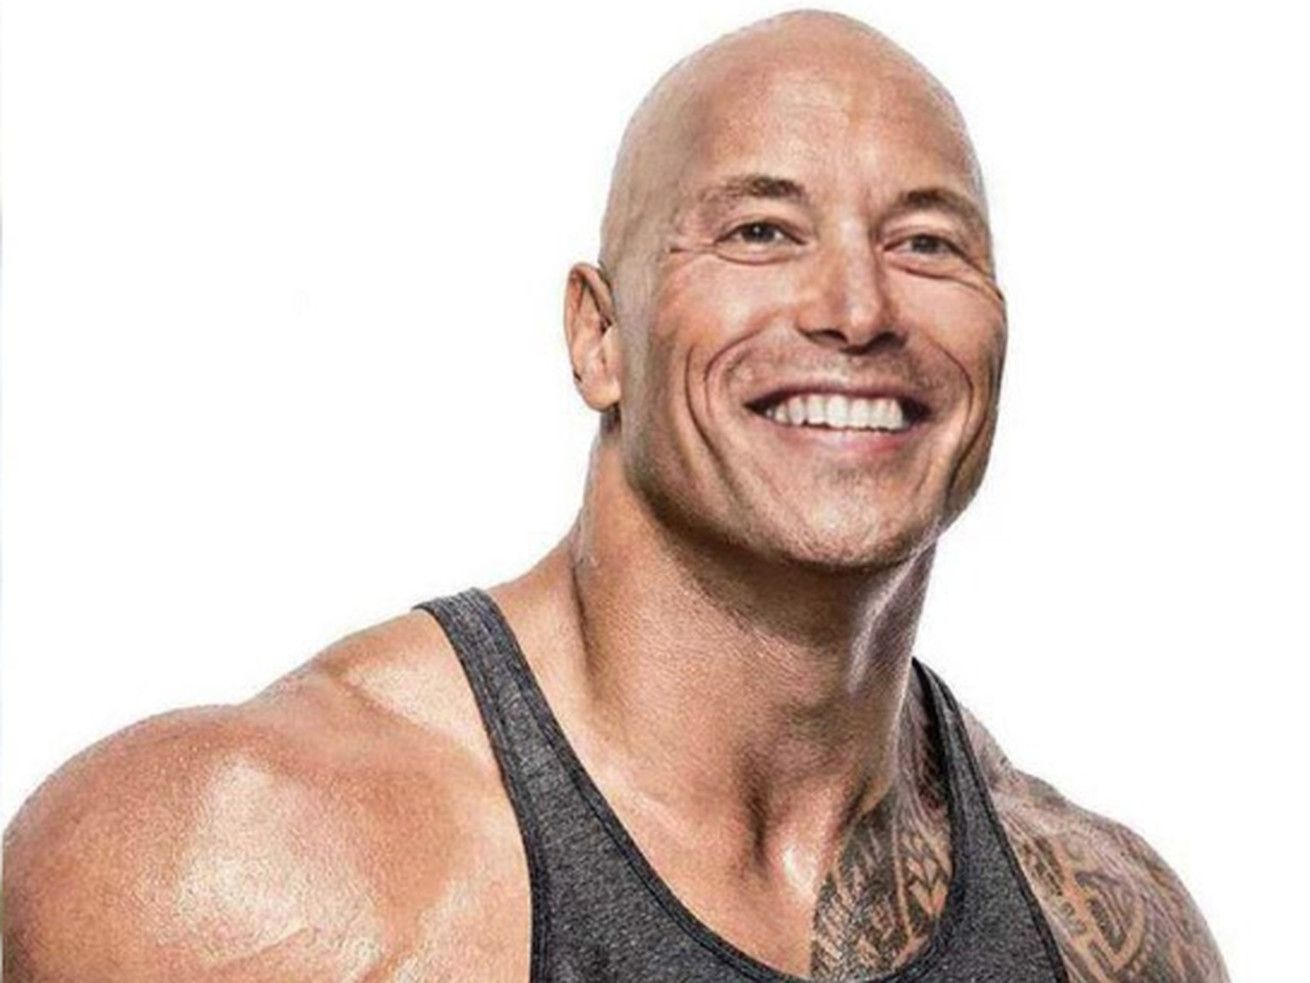 Elon Musk Photoshopped His Face Onto The Rock S Body And It S Something Else Photoshop Face The Rock